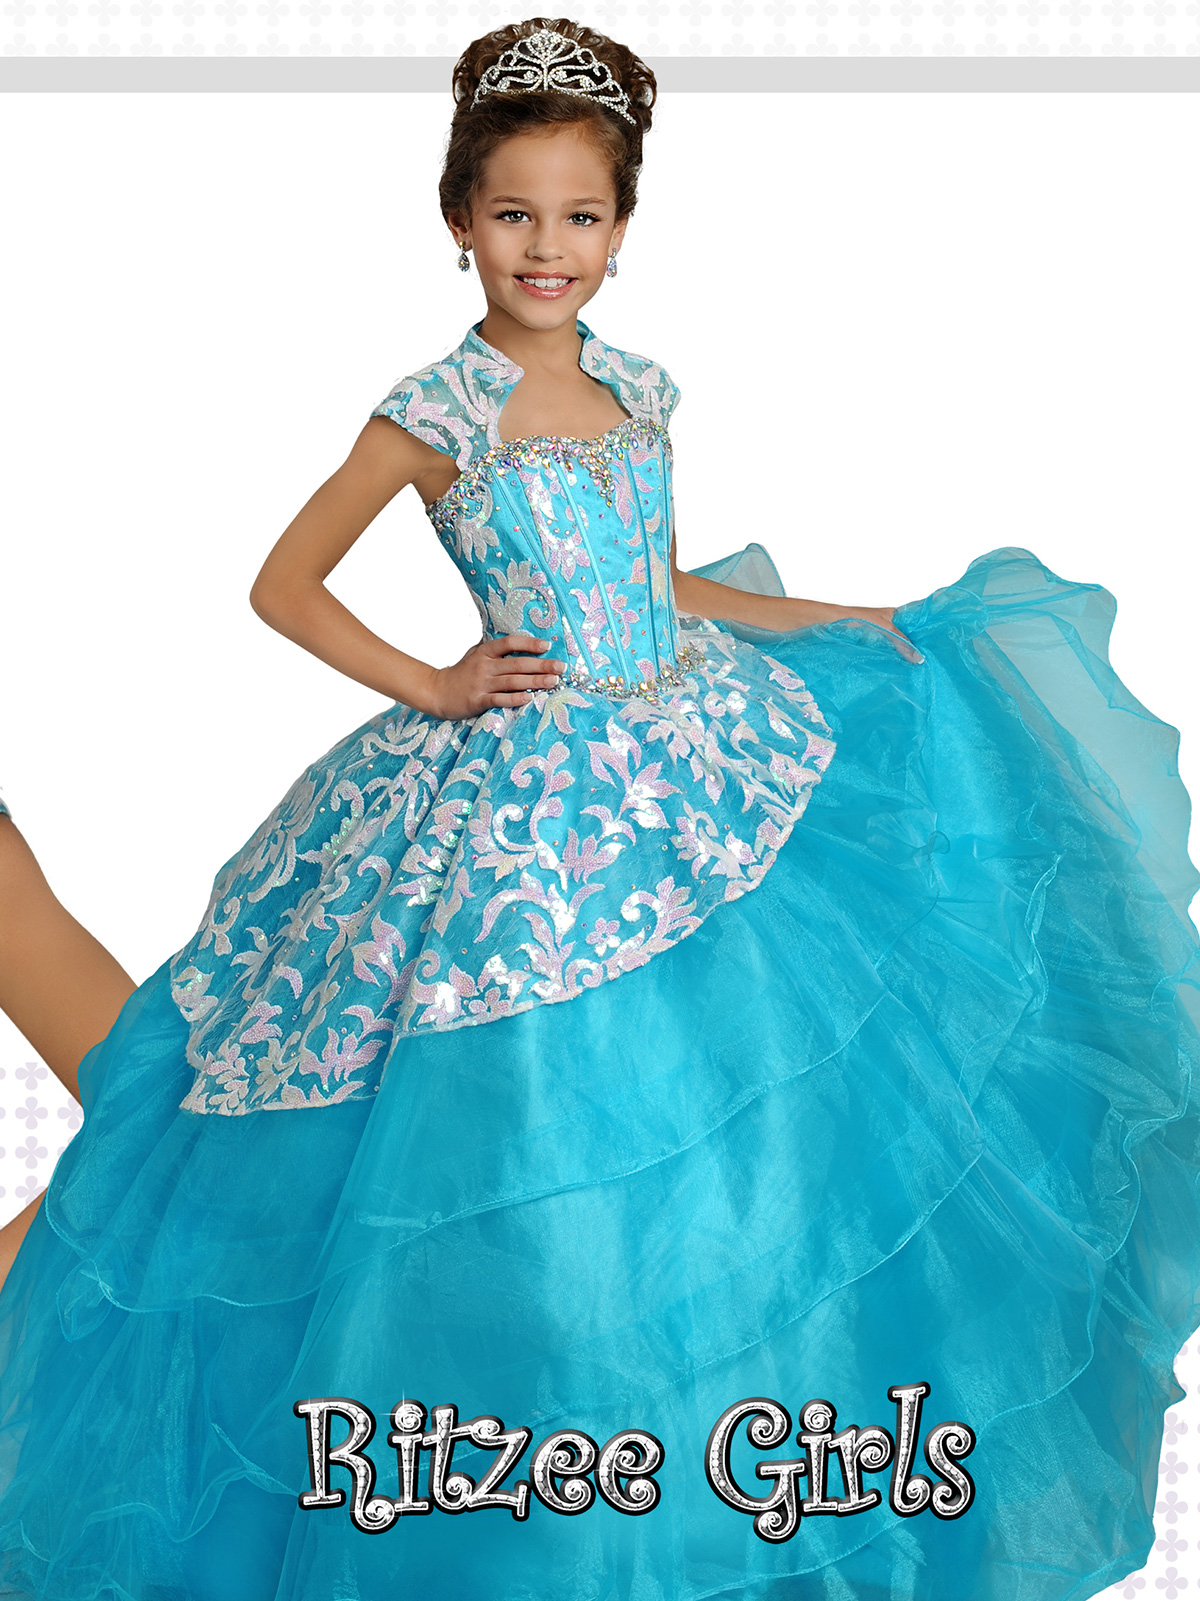 Ritzee Girls 7256 Ruffled Sequin Lace Pageant Dress|Pageantdesigns.com